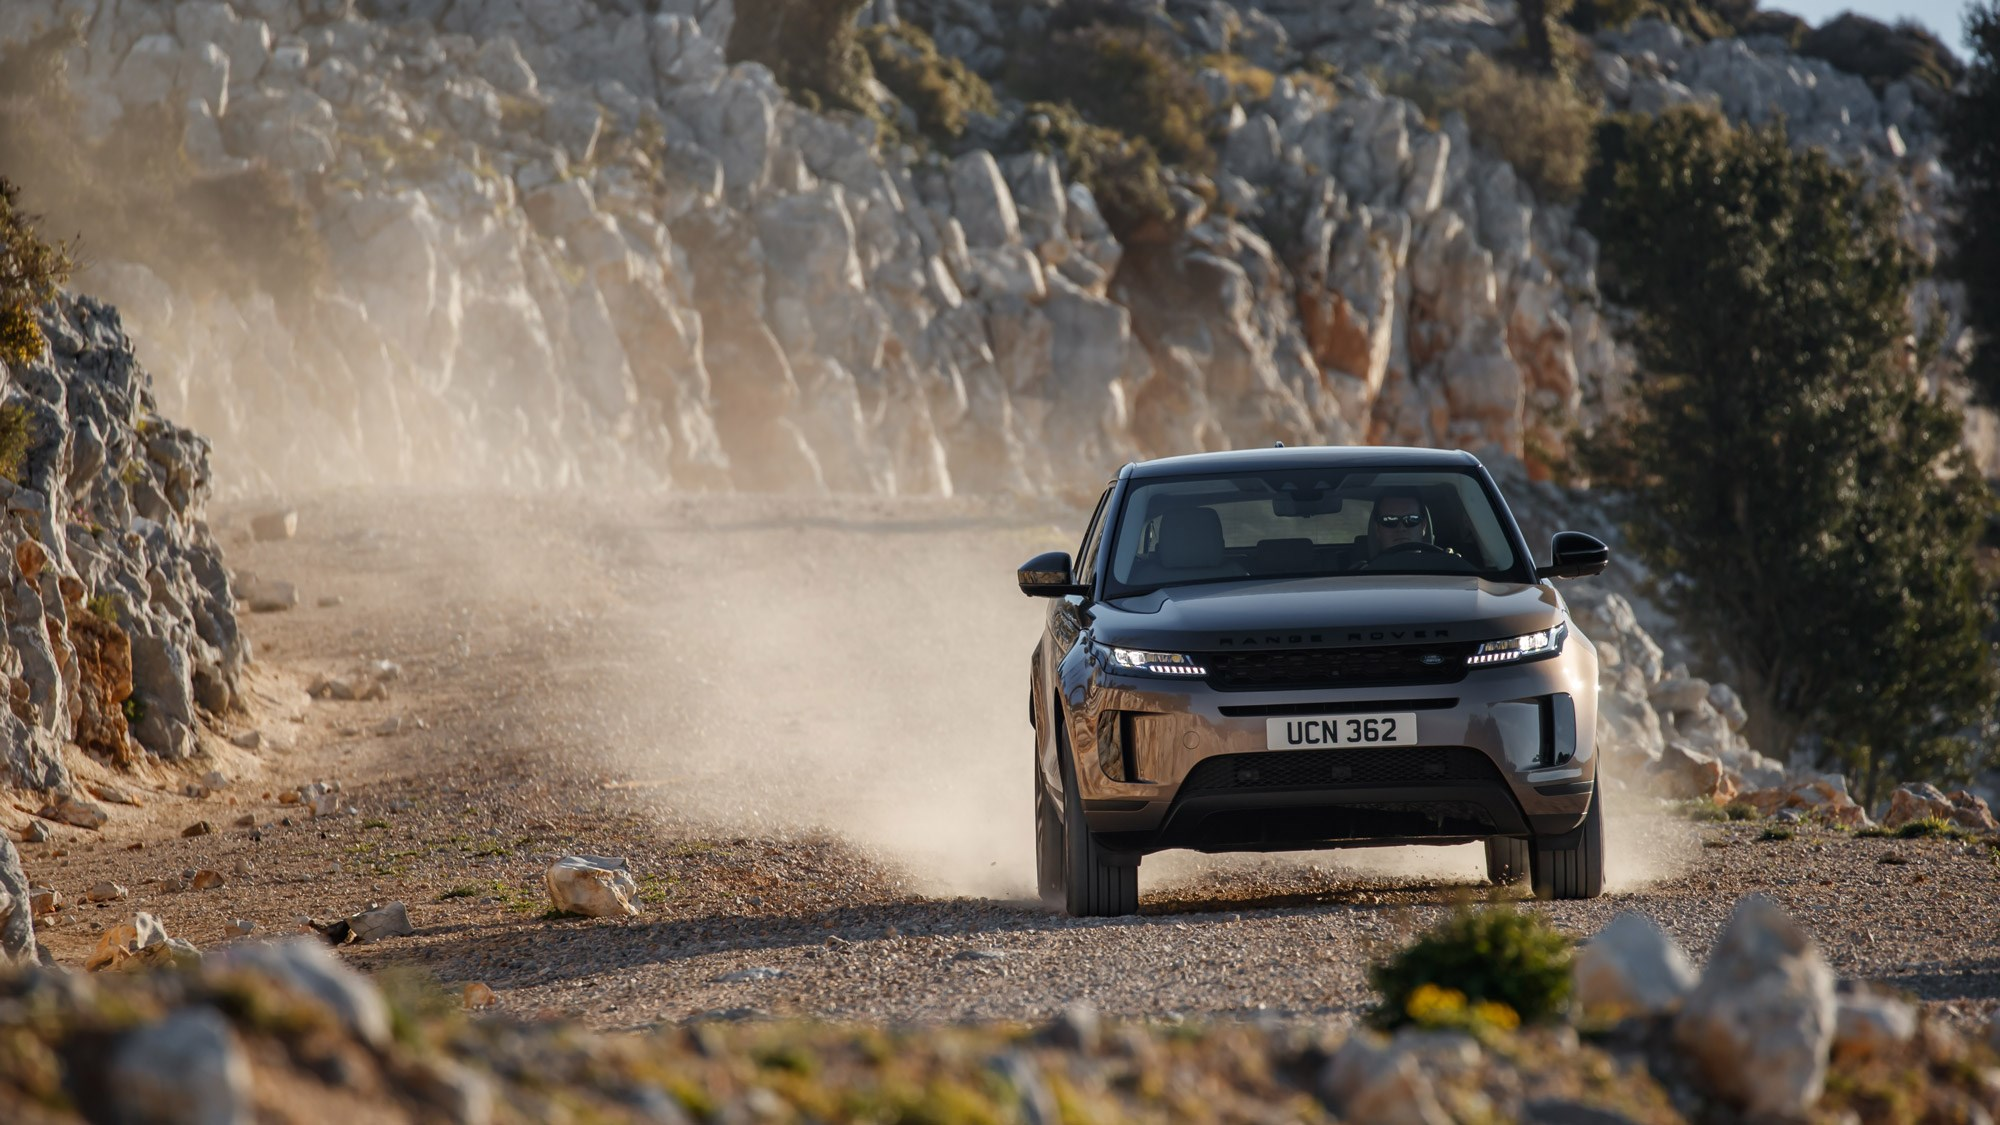 Range Rover Evoque (2019) review: mission accomplished | CAR Magazine